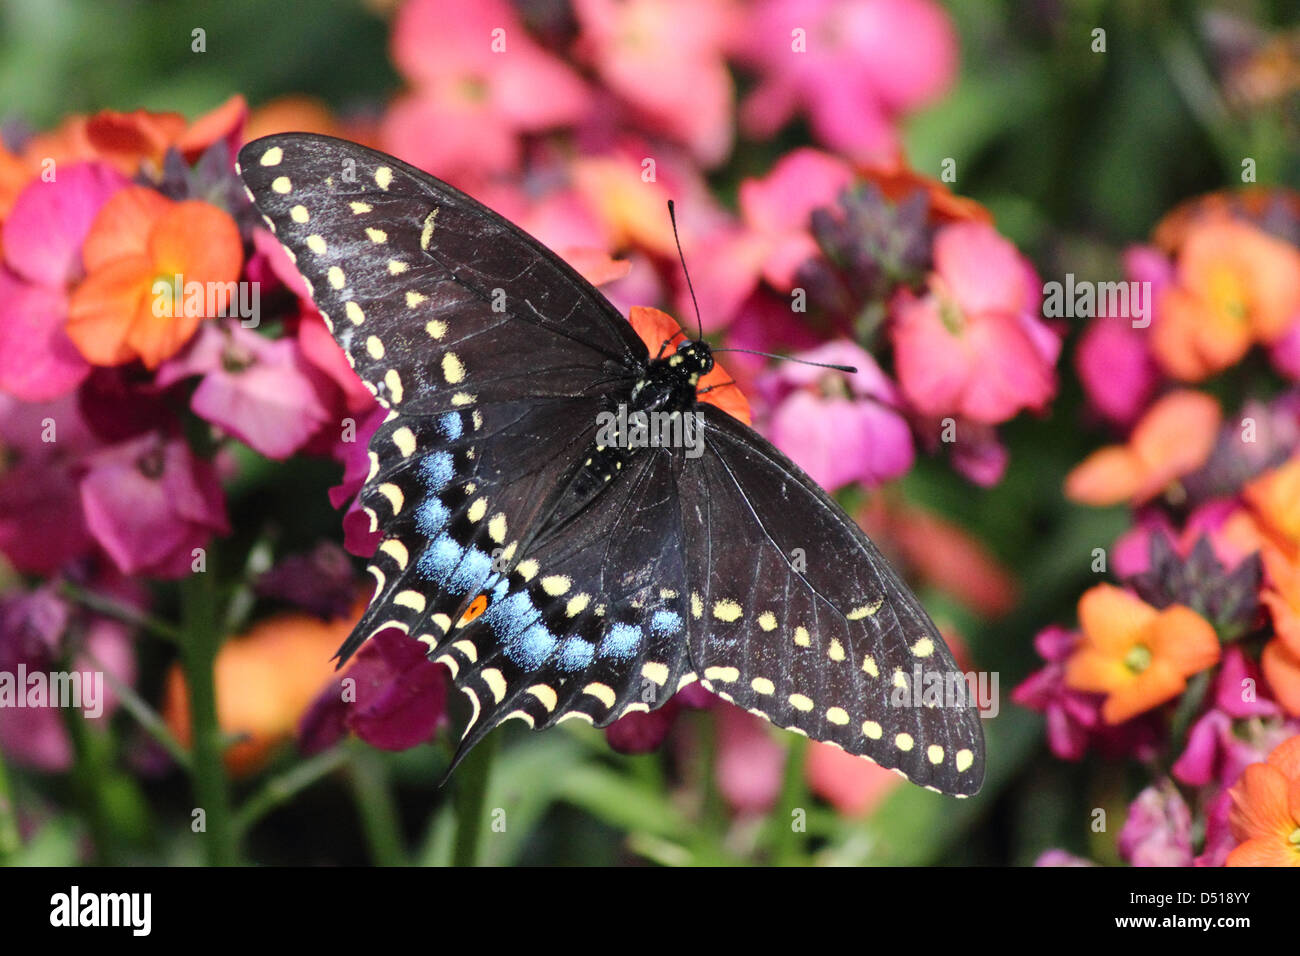 A colorful Eastern Tiger Swallowtail Butterfly feeding on a flower - Stock Image